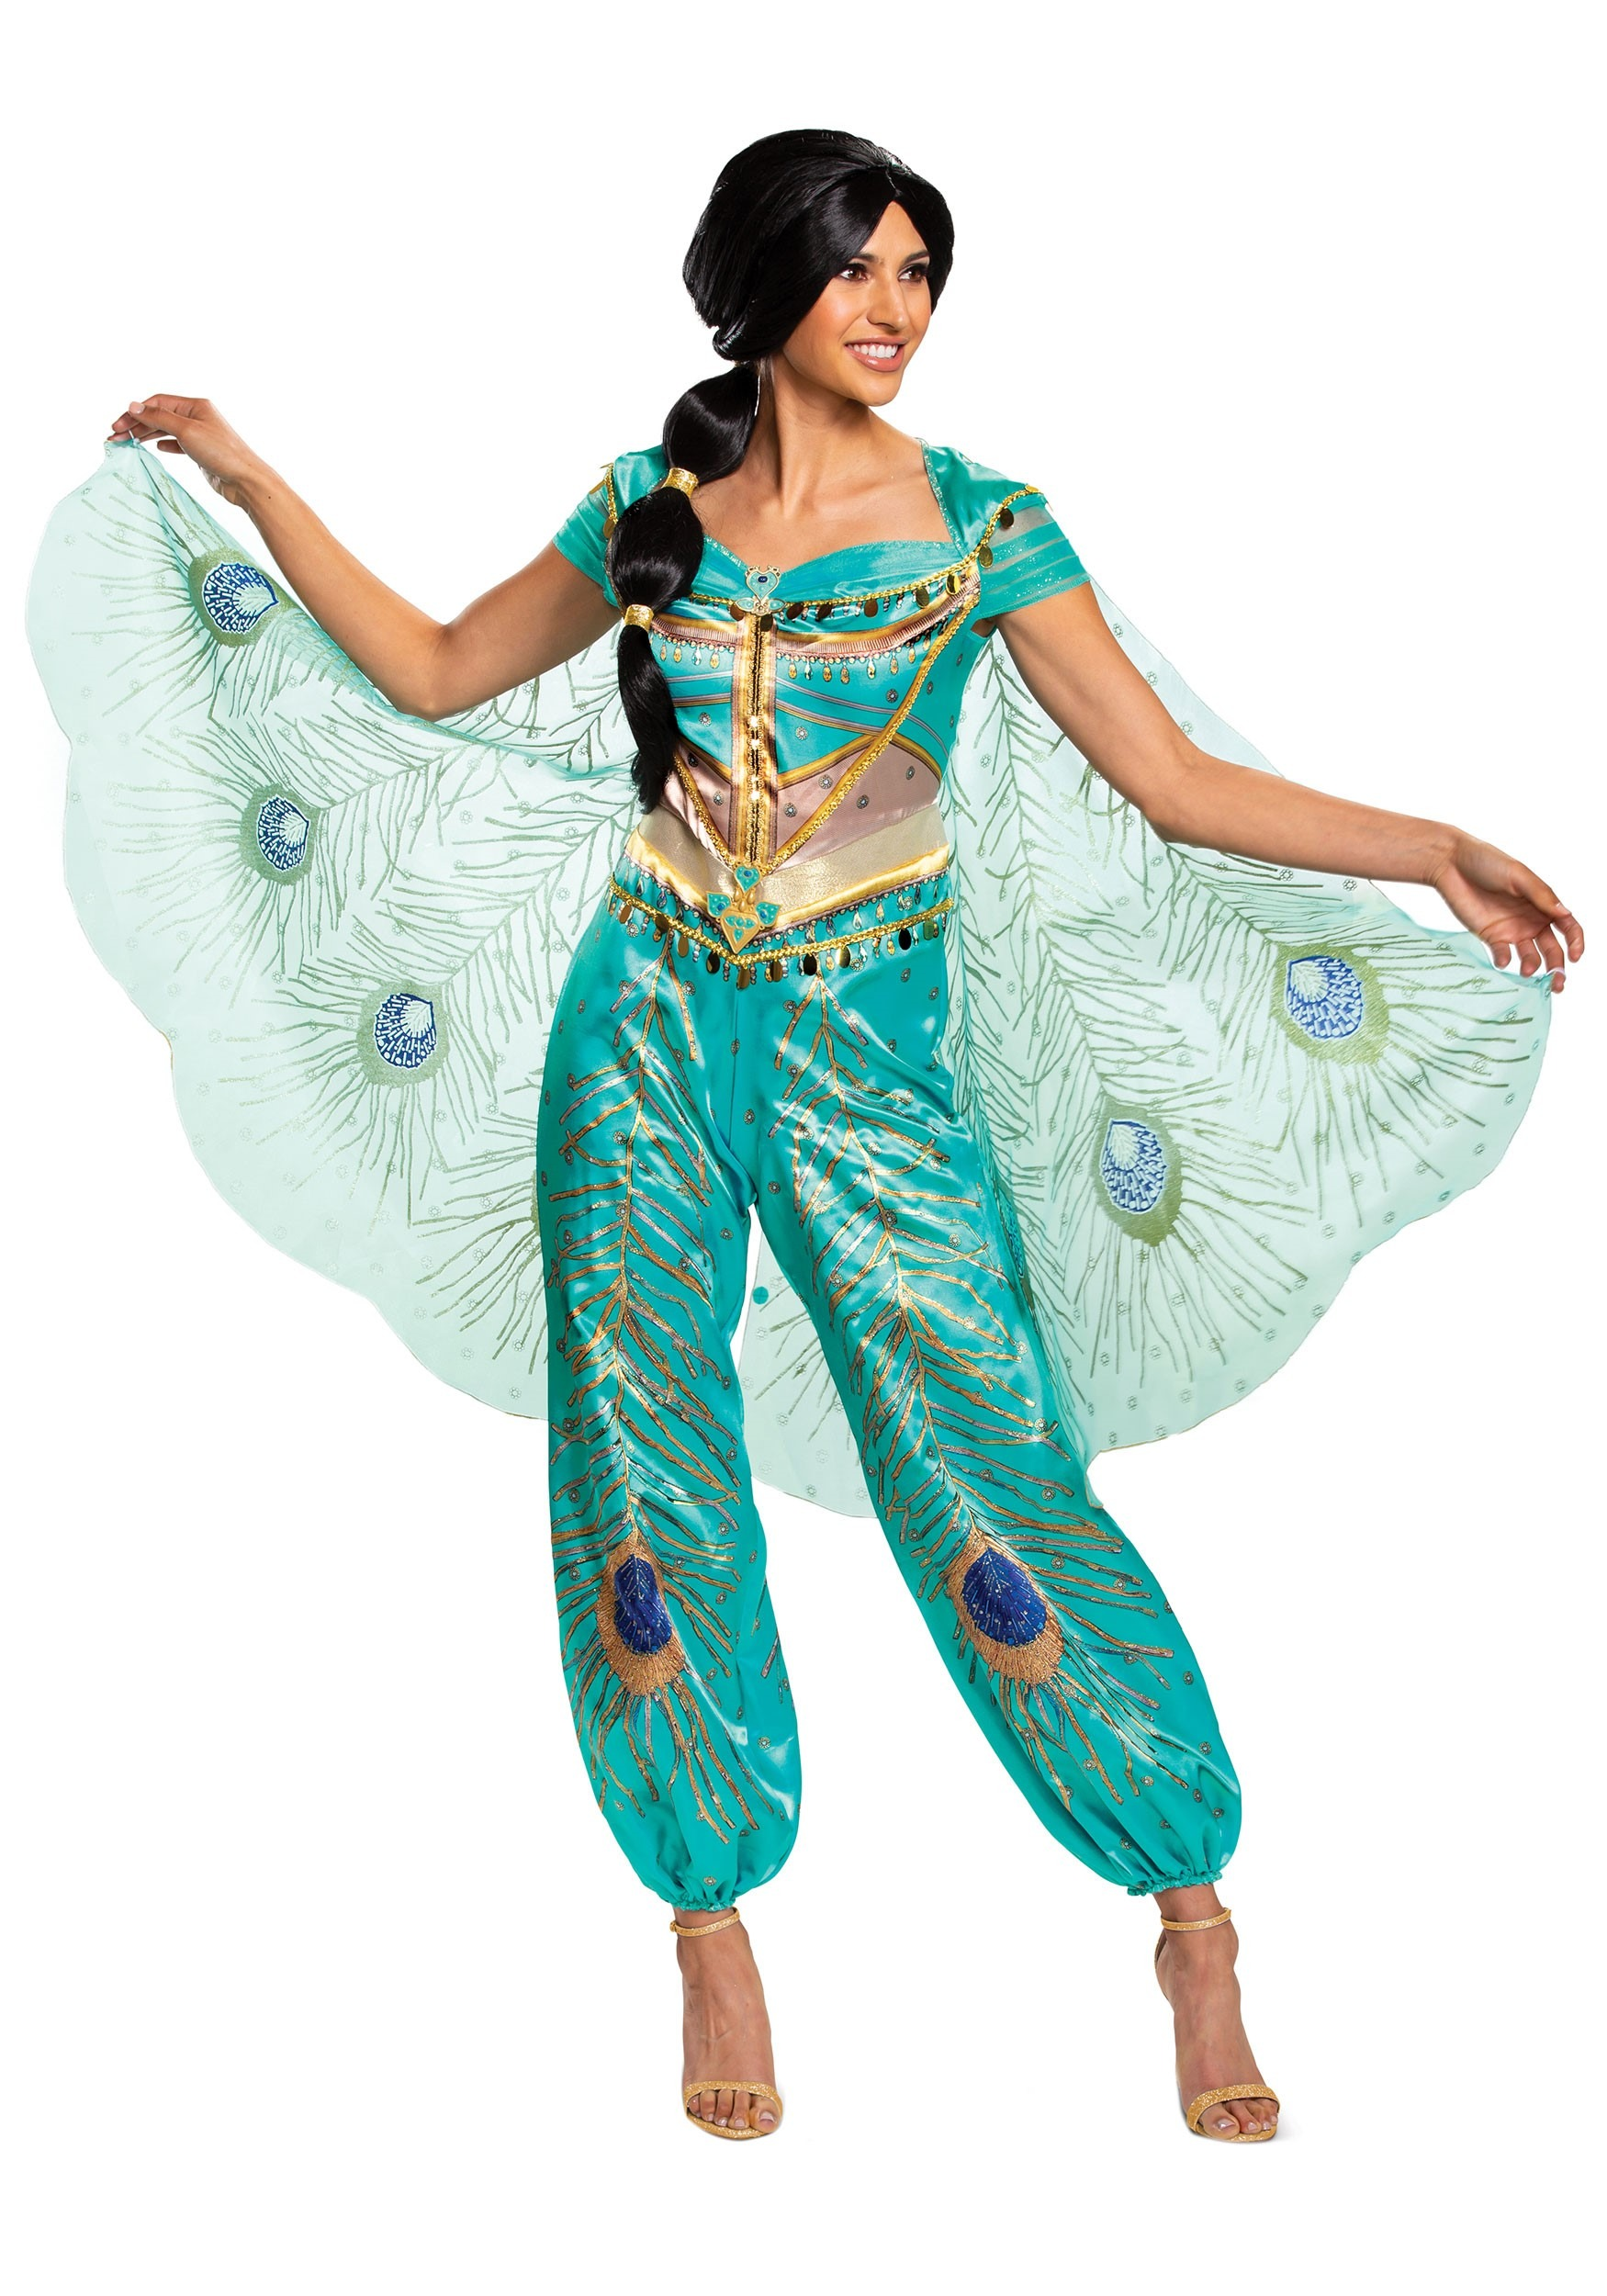 Disney Aladdin Live Action Jasmine Costume for Women